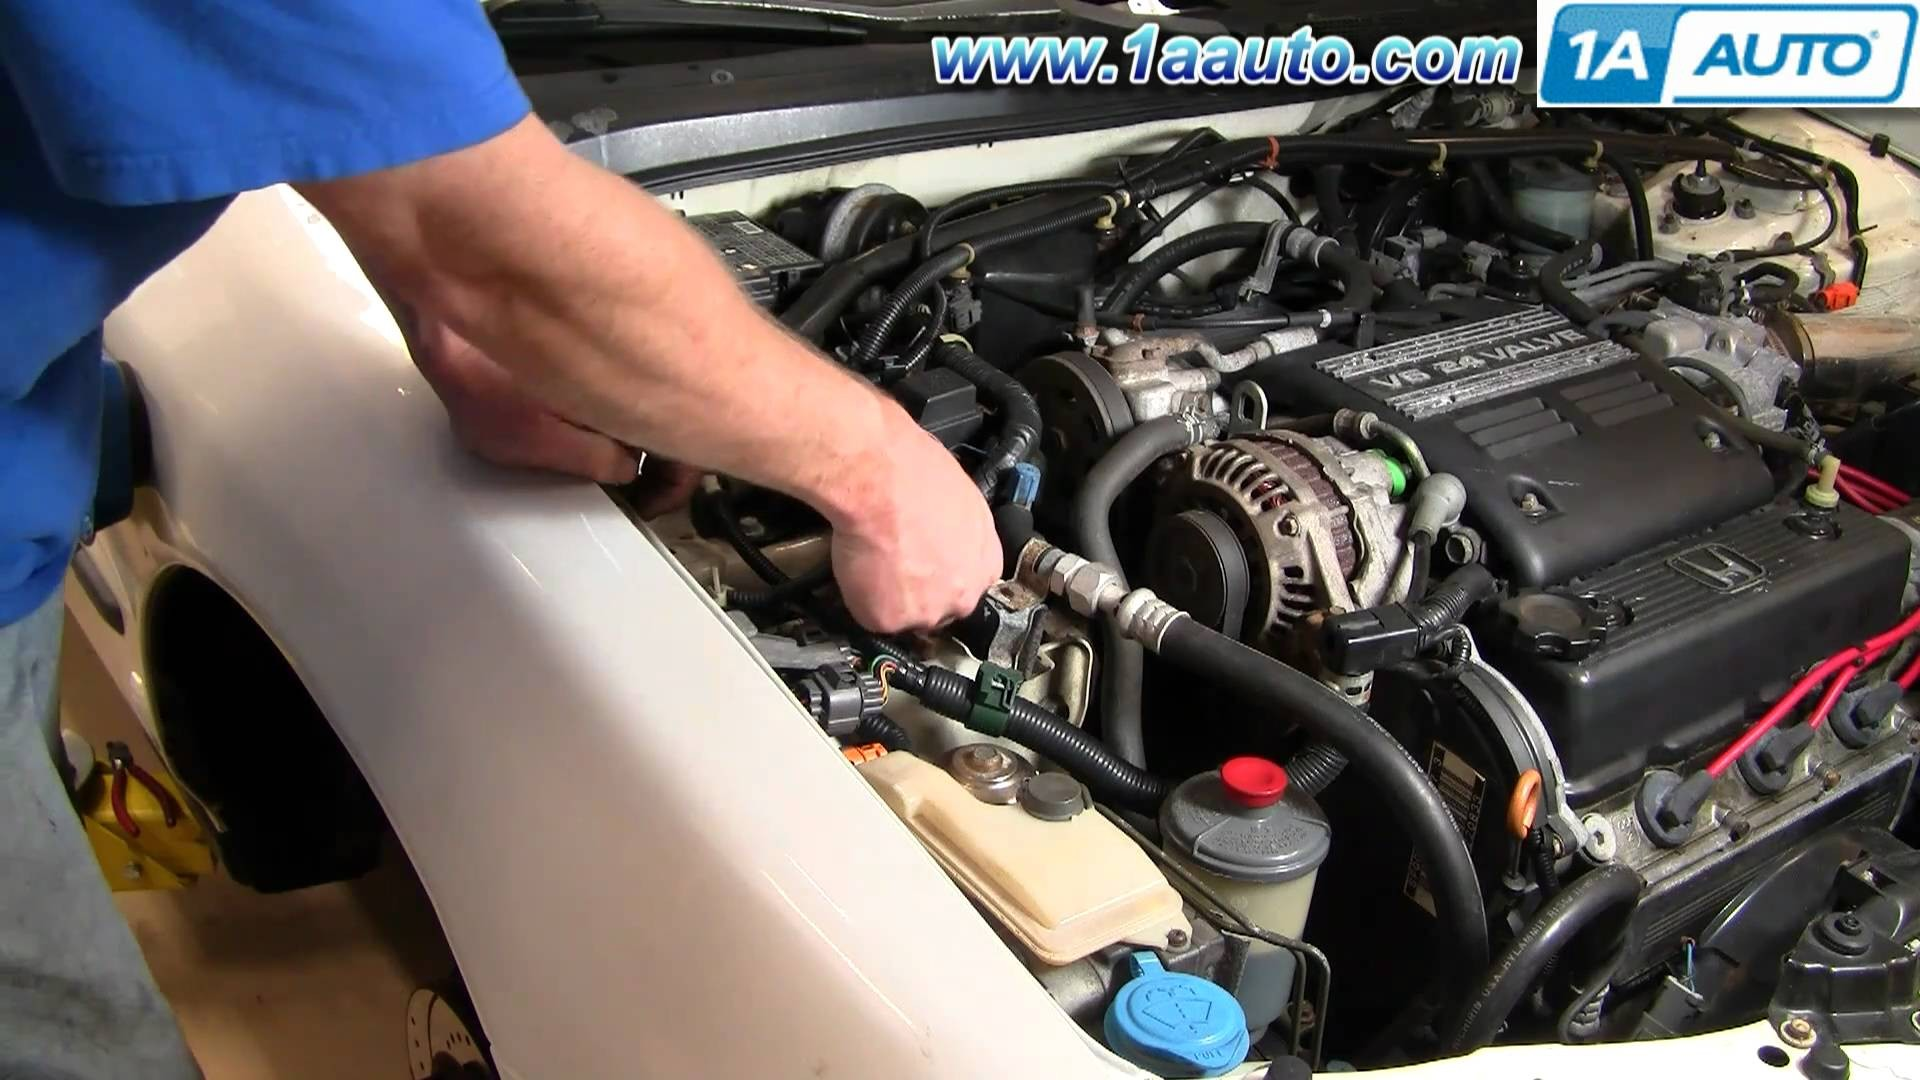 1992 Honda Accord Engine Diagram How To Install Replace Abs Sensor And Harness Odyssey